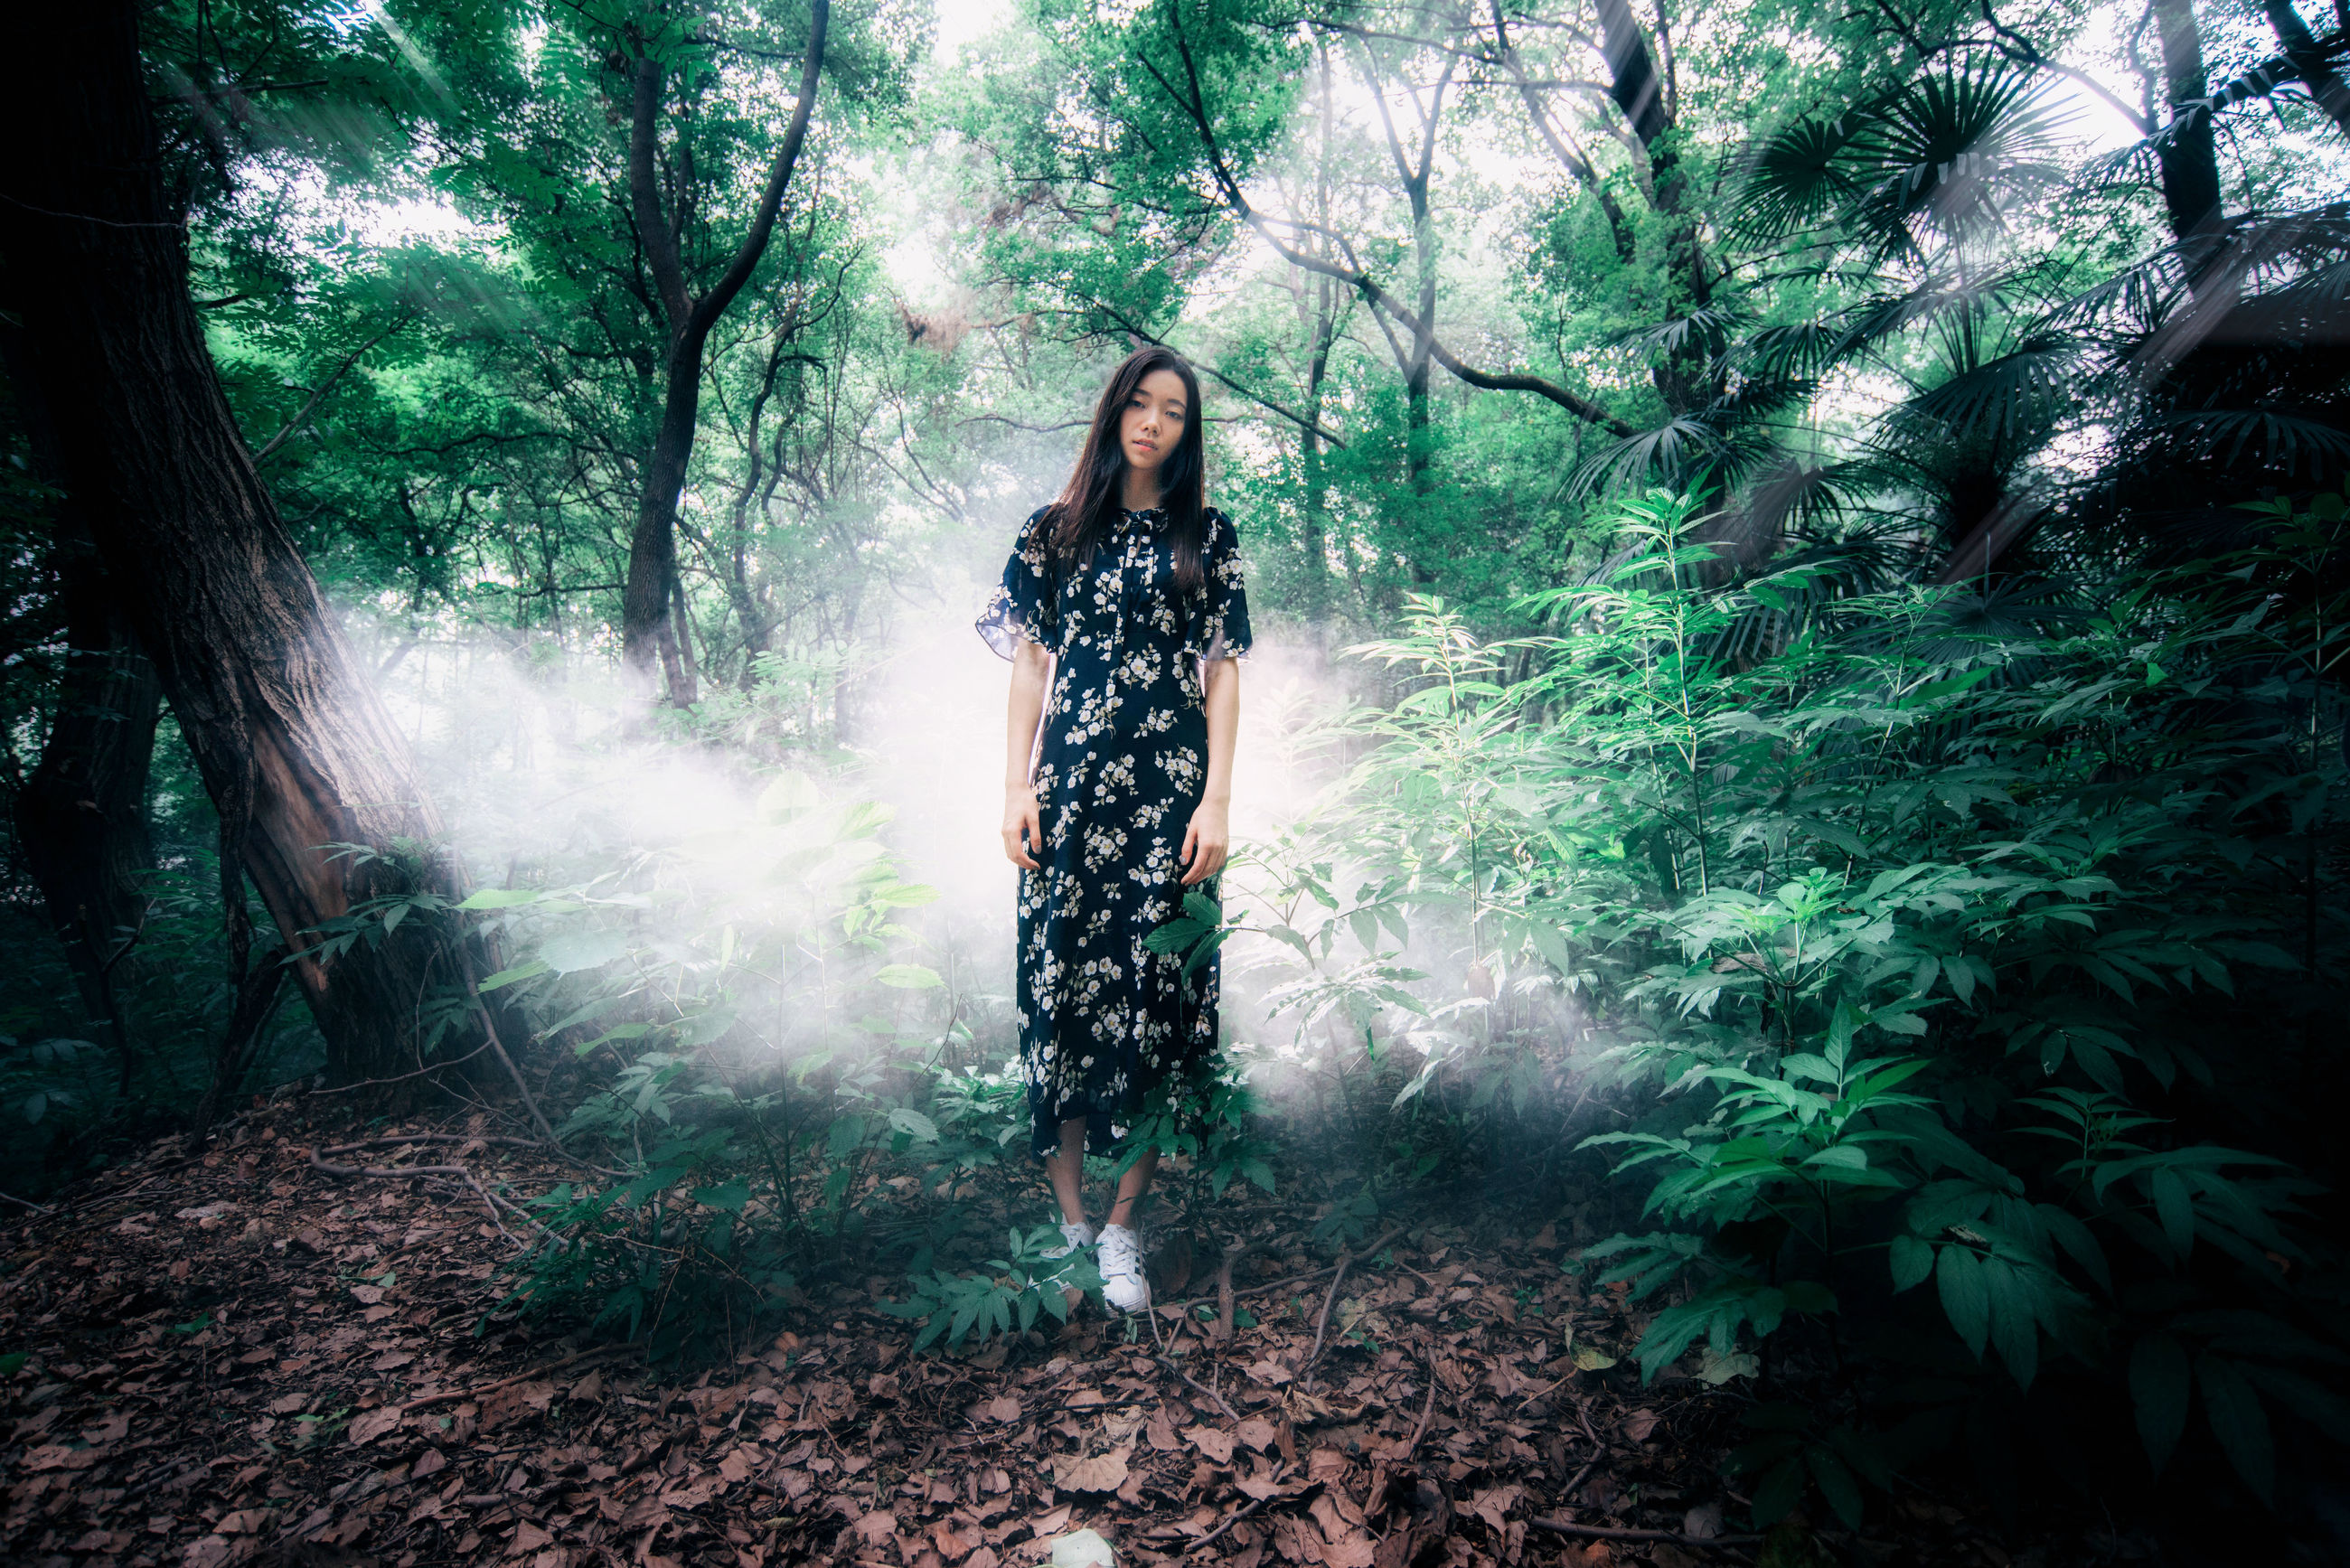 tree, forest, lifestyles, leisure activity, full length, standing, tranquility, nature, growth, woodland, tree trunk, casual clothing, tranquil scene, plant, outdoors, day, beauty in nature, non-urban scene